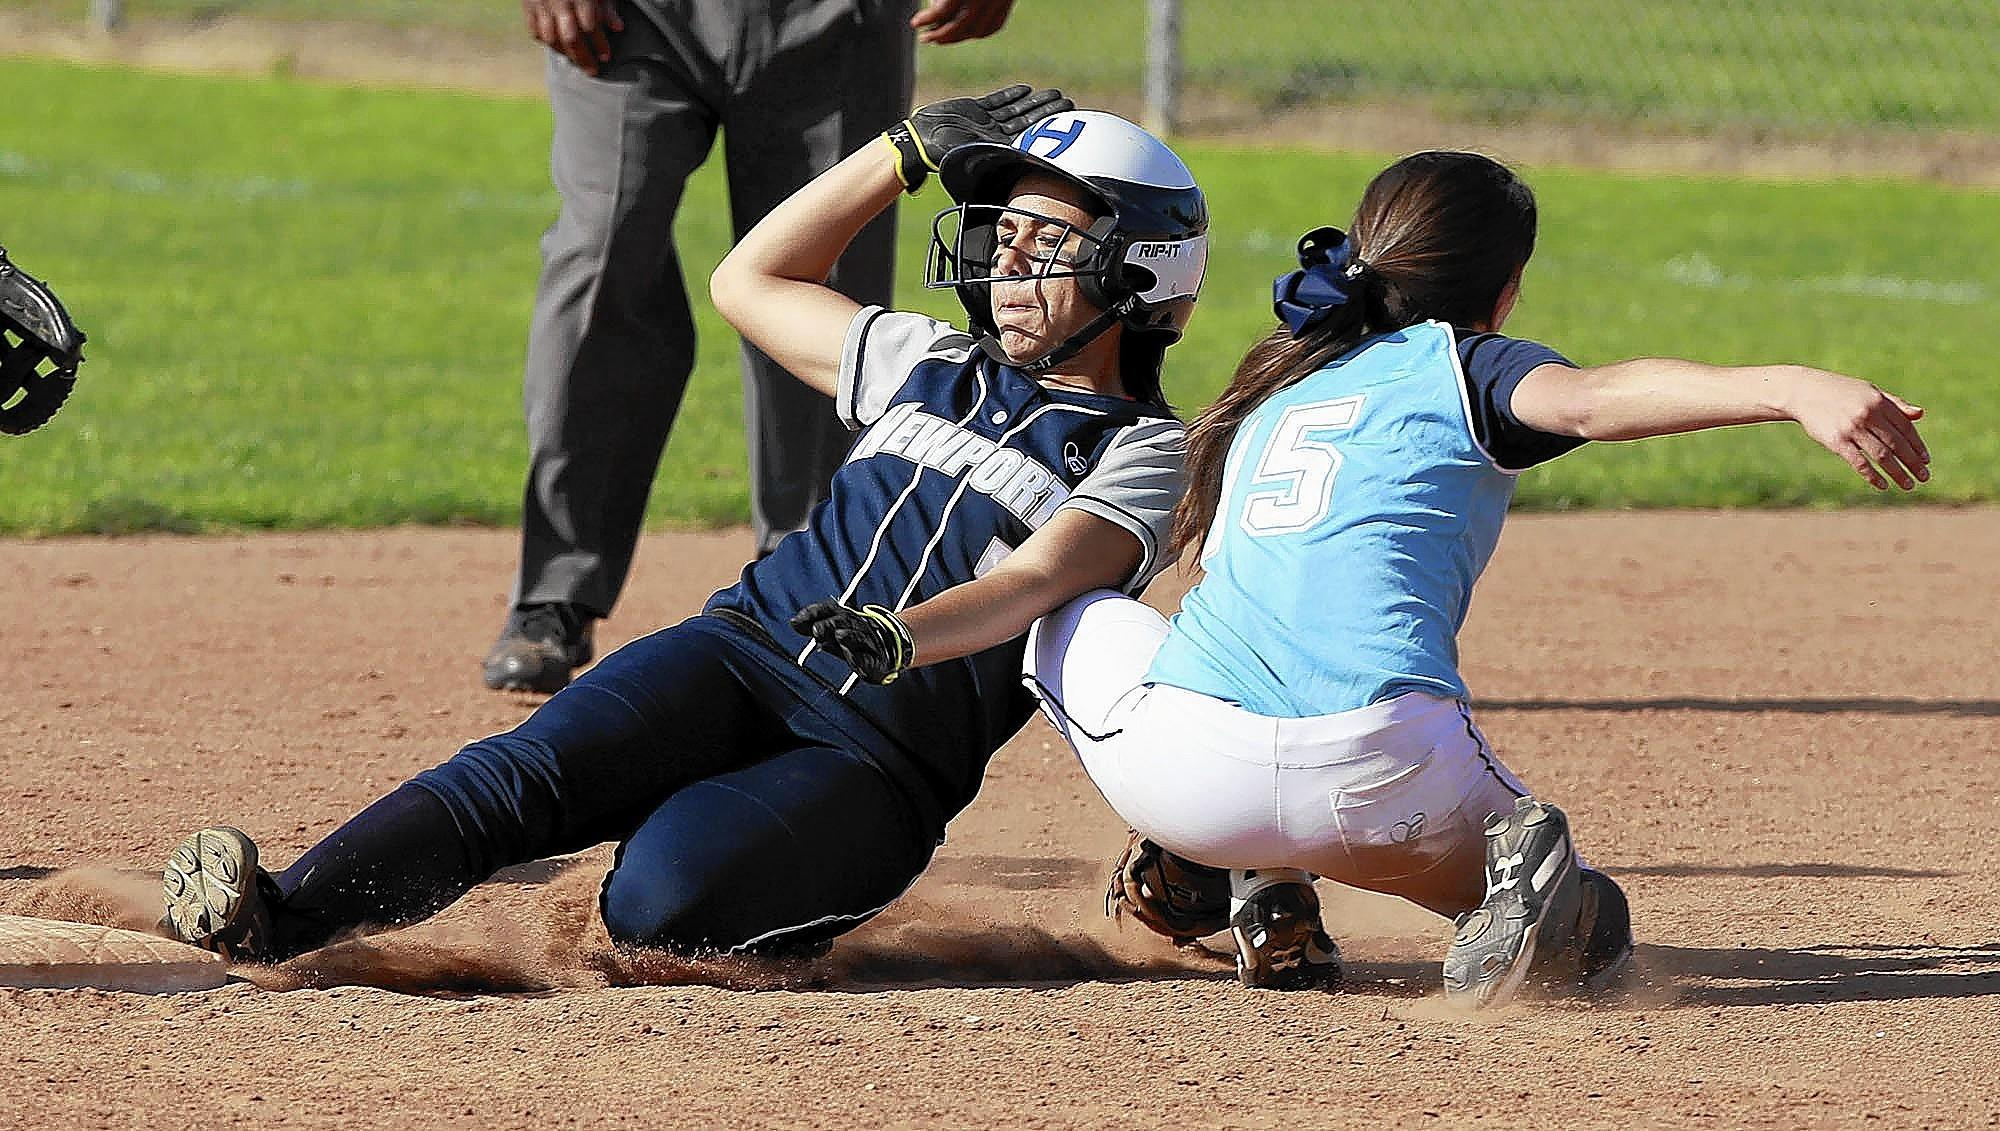 Newport Harbor High's Mariah Cruz slides into second just under the tag of Corona del Mar's Lauren Oberreiter during the Battle of the Bay softball game at Newport Harbor on Thursday.